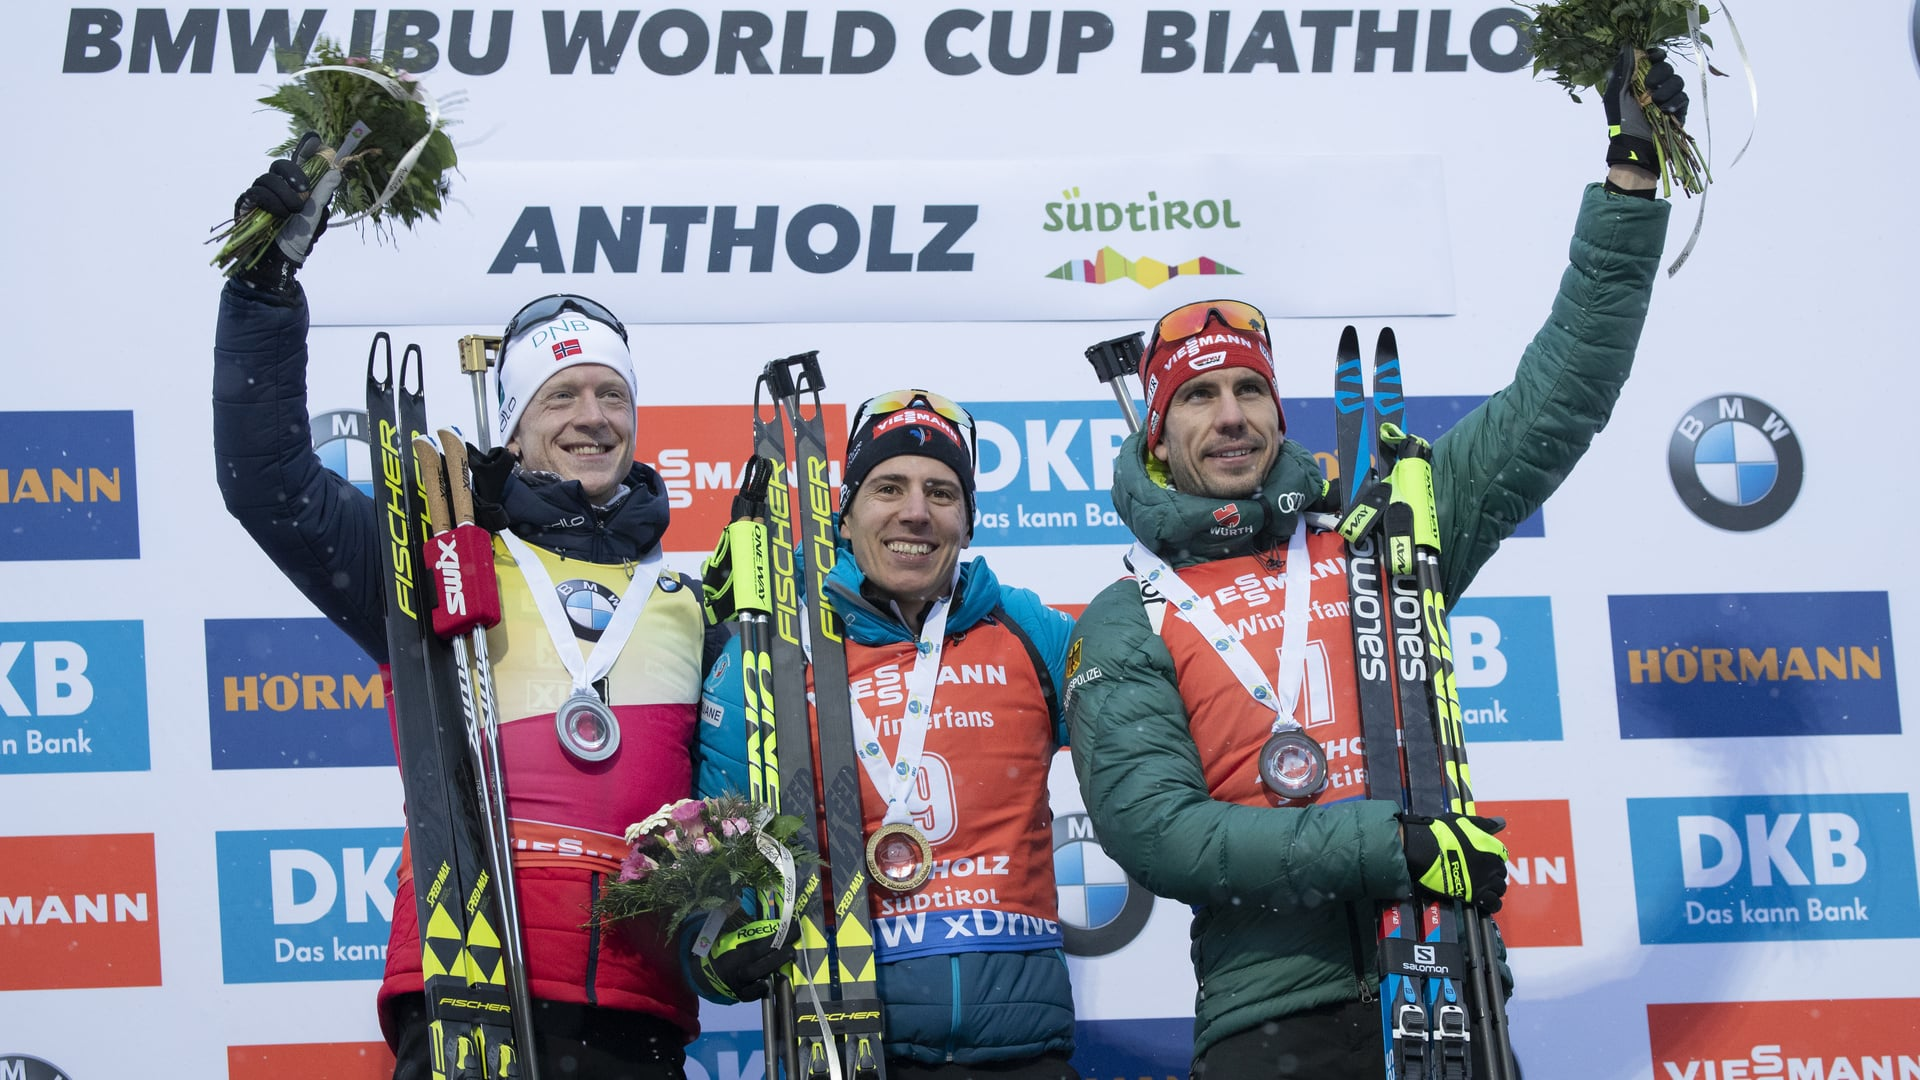 27.01.2019 - Quentin Fillon Maillet celebrates at the Anterselva final